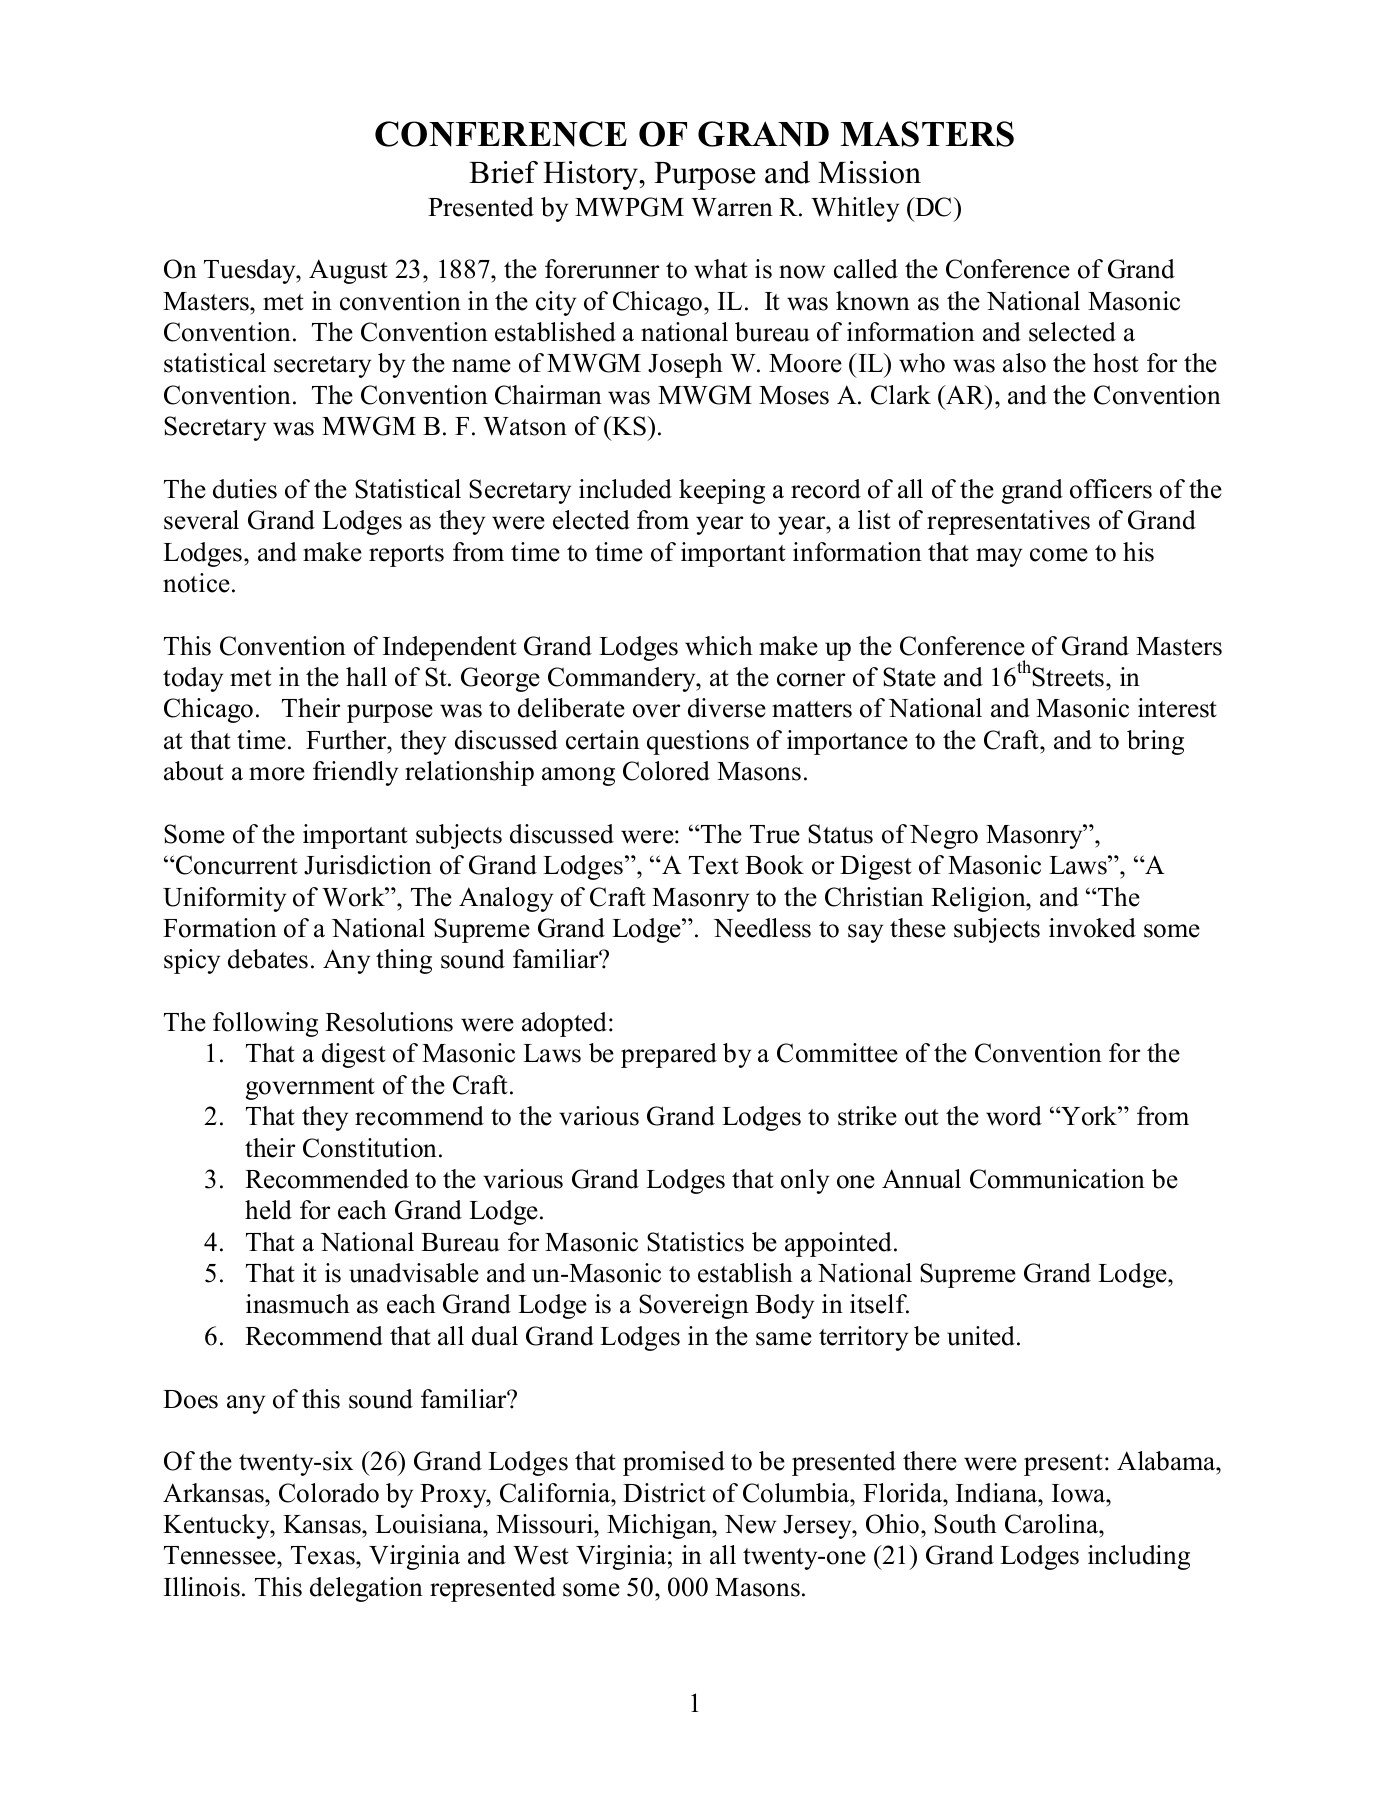 CONFERENCE OF GRAND MASTERS Pages 1 - 4 - Text Version | AnyFlip